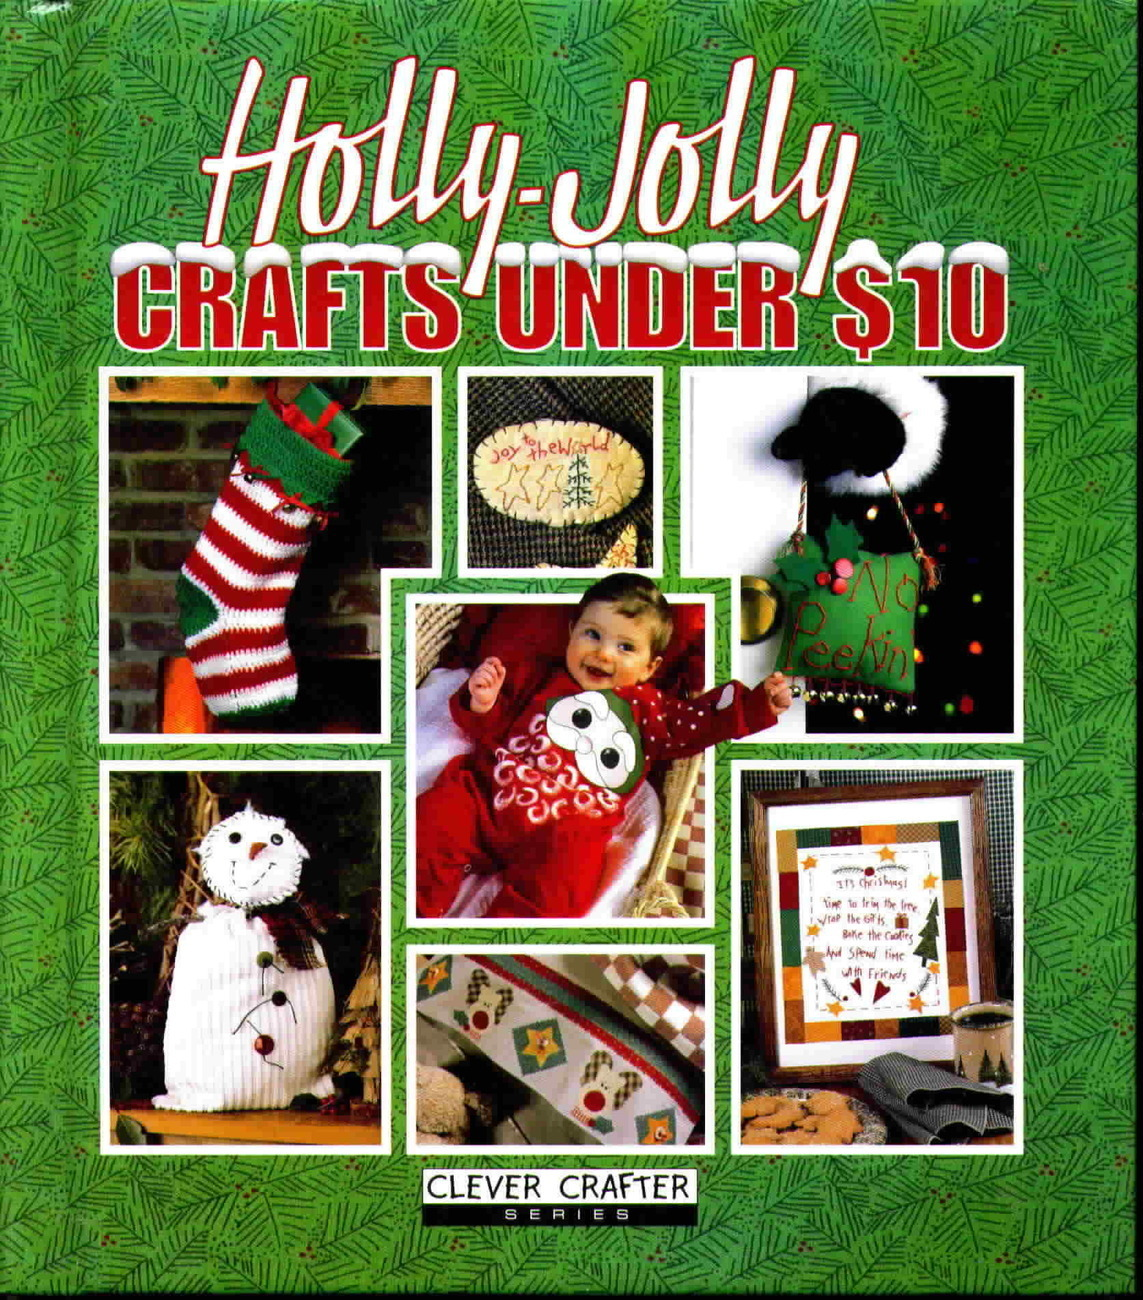 Leisure Arts Holly Jolly Crafts Under $10, First Edition